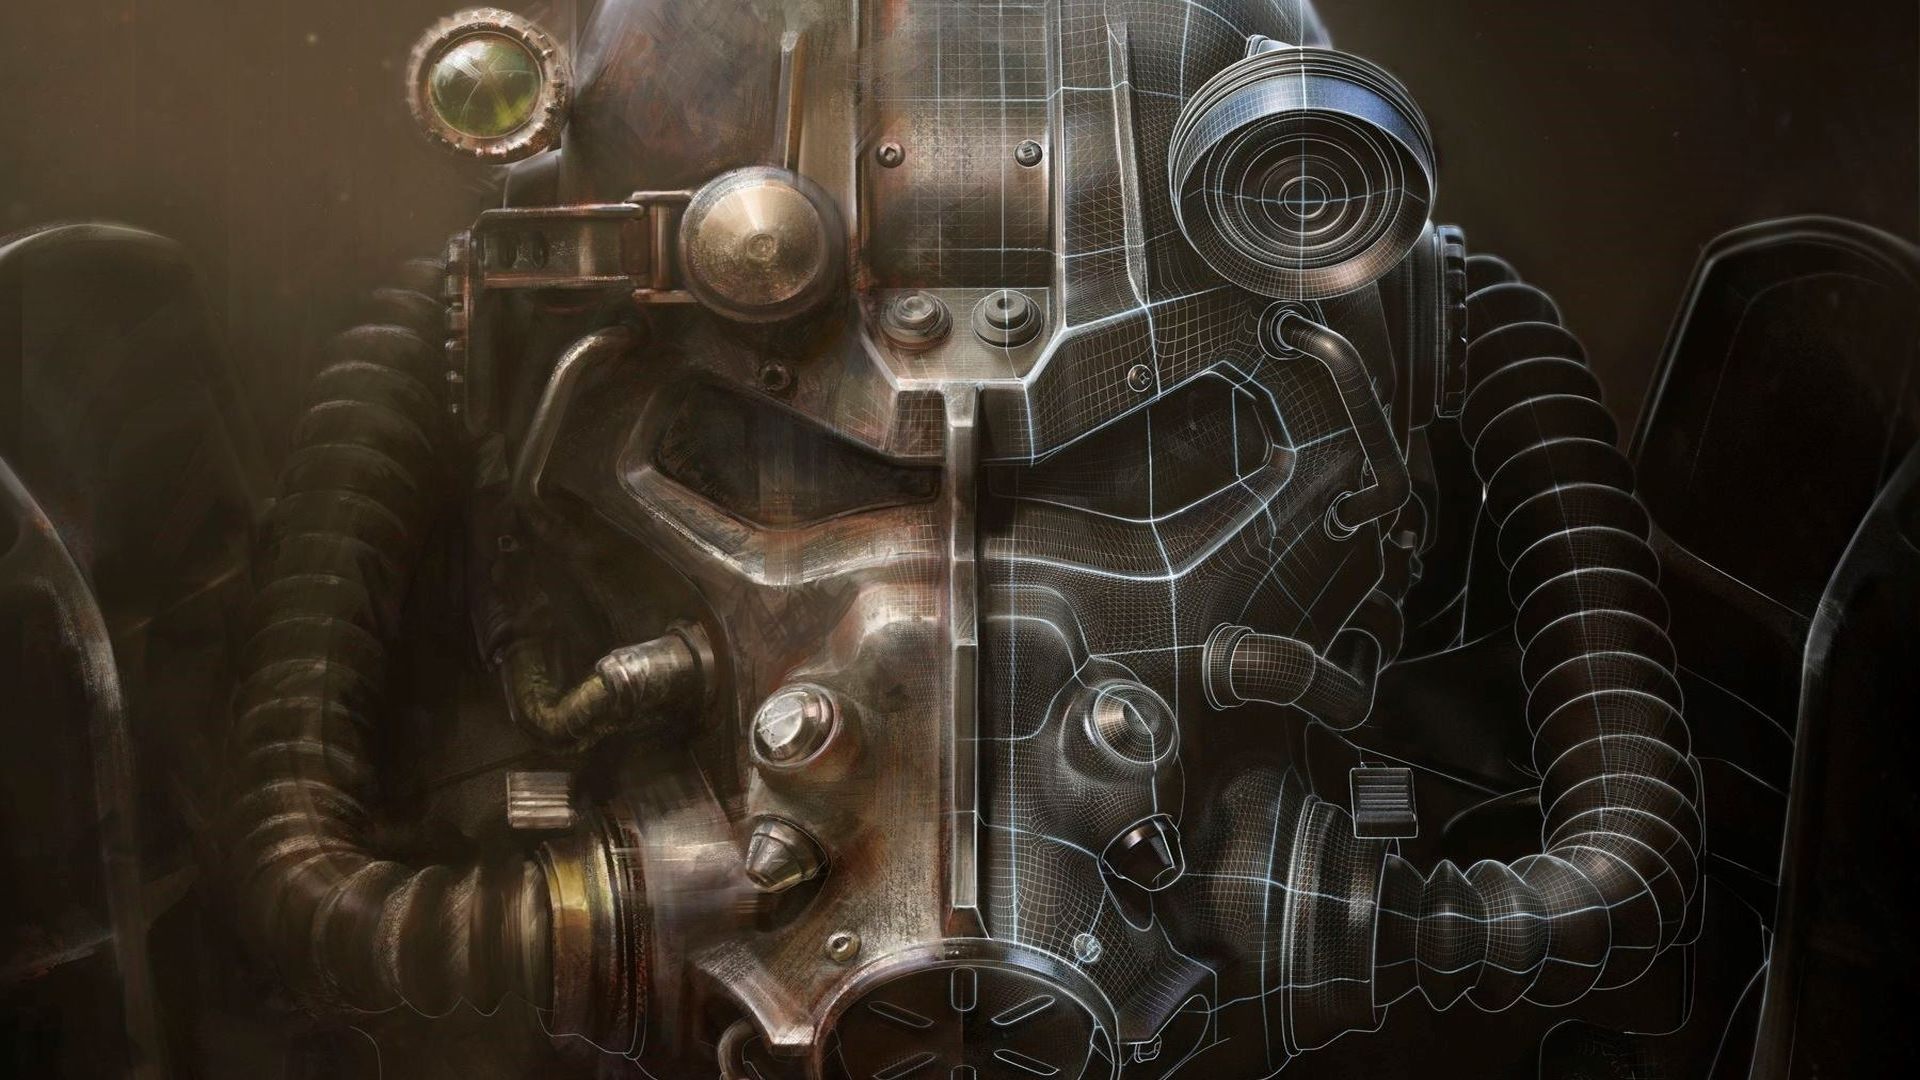 Free Fallout Wallpaper Hd Resolution ? Long Wallpapers